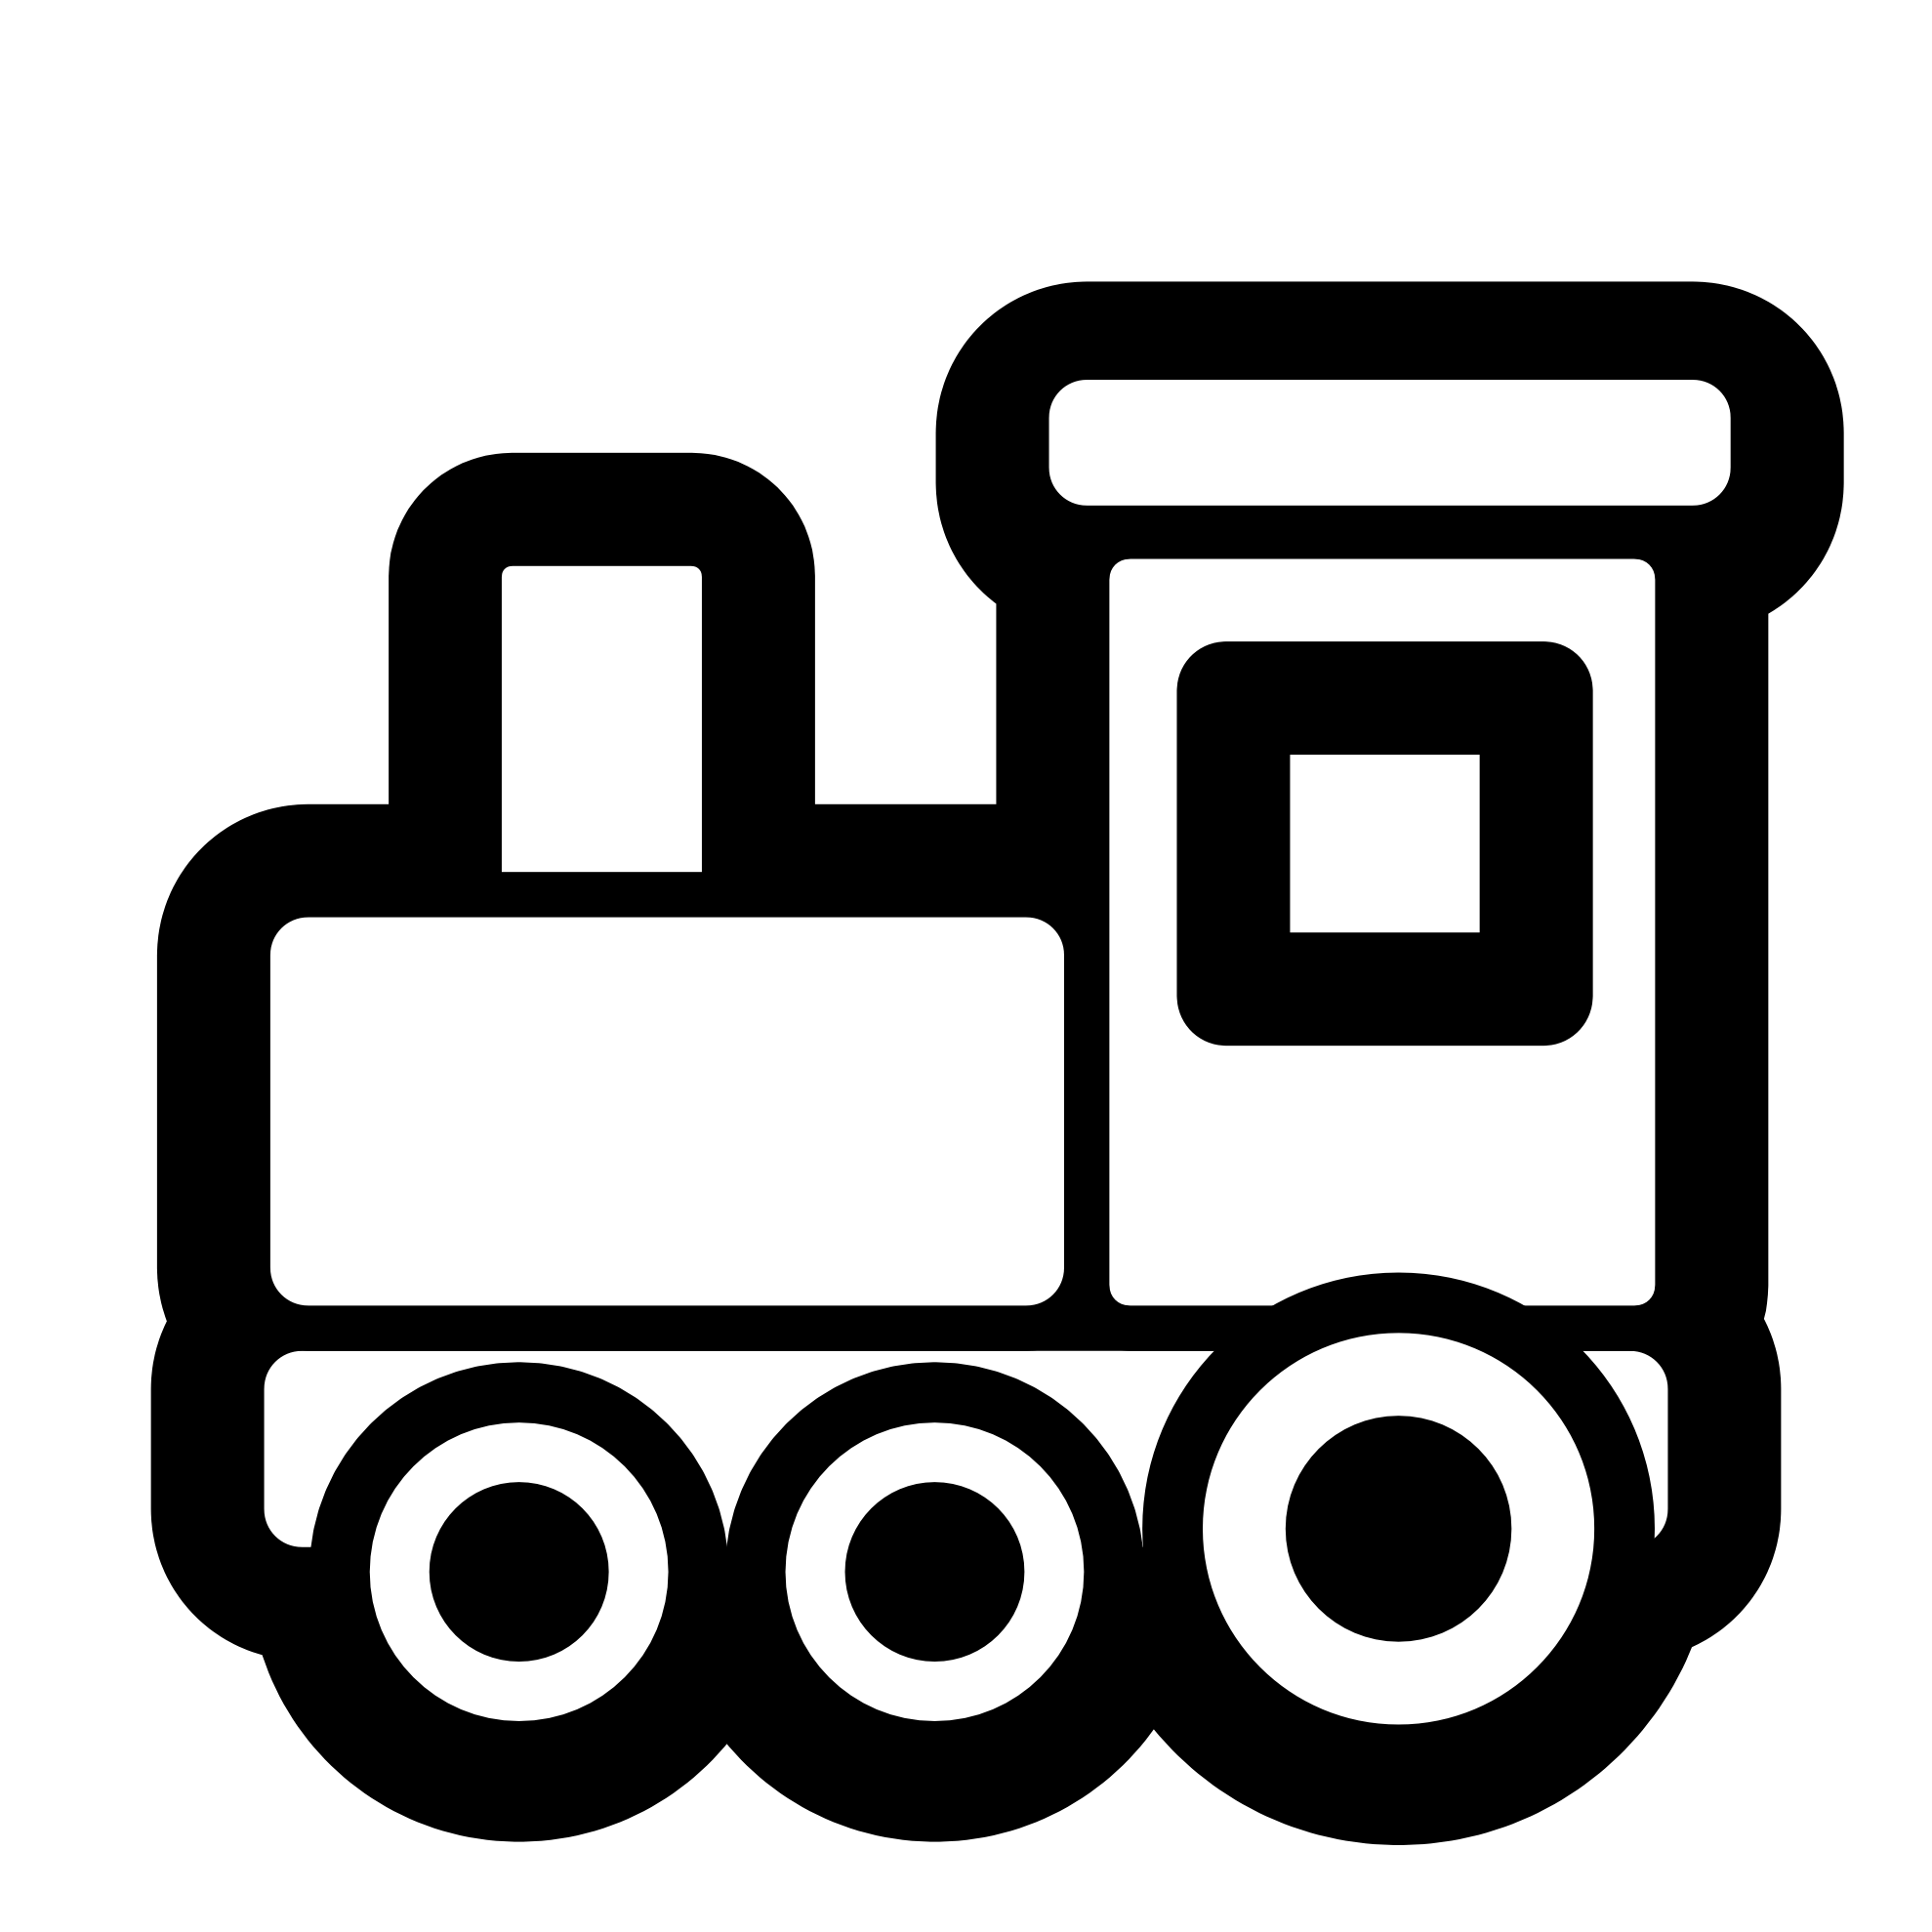 train coloring sheets free cliparts that you can download to you